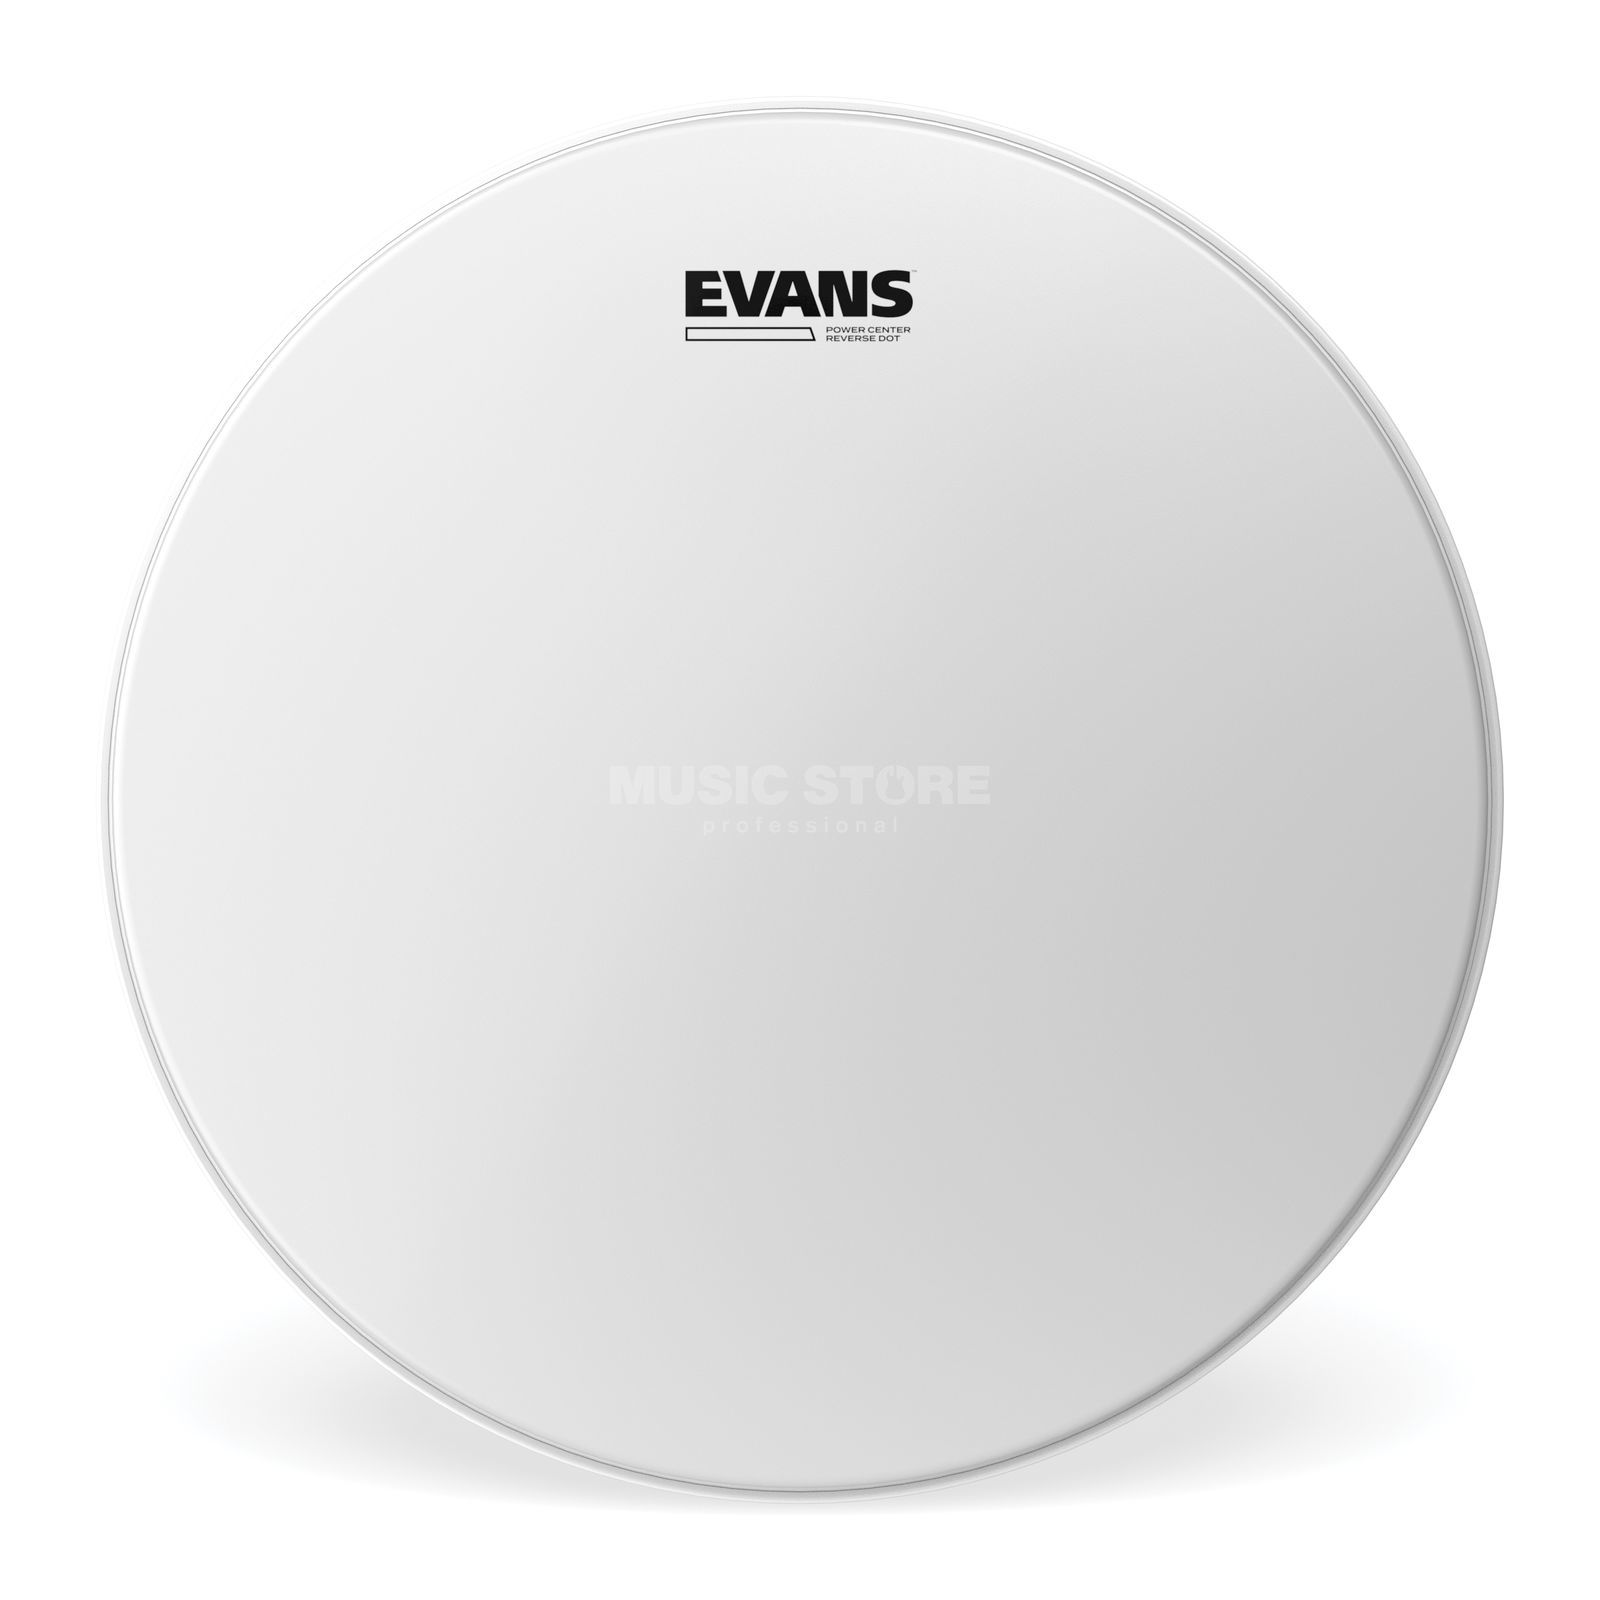 "Evans Power Center 14"", B14G1RD, Reverse Dot, Snare Batter Zdjęcie produktu"